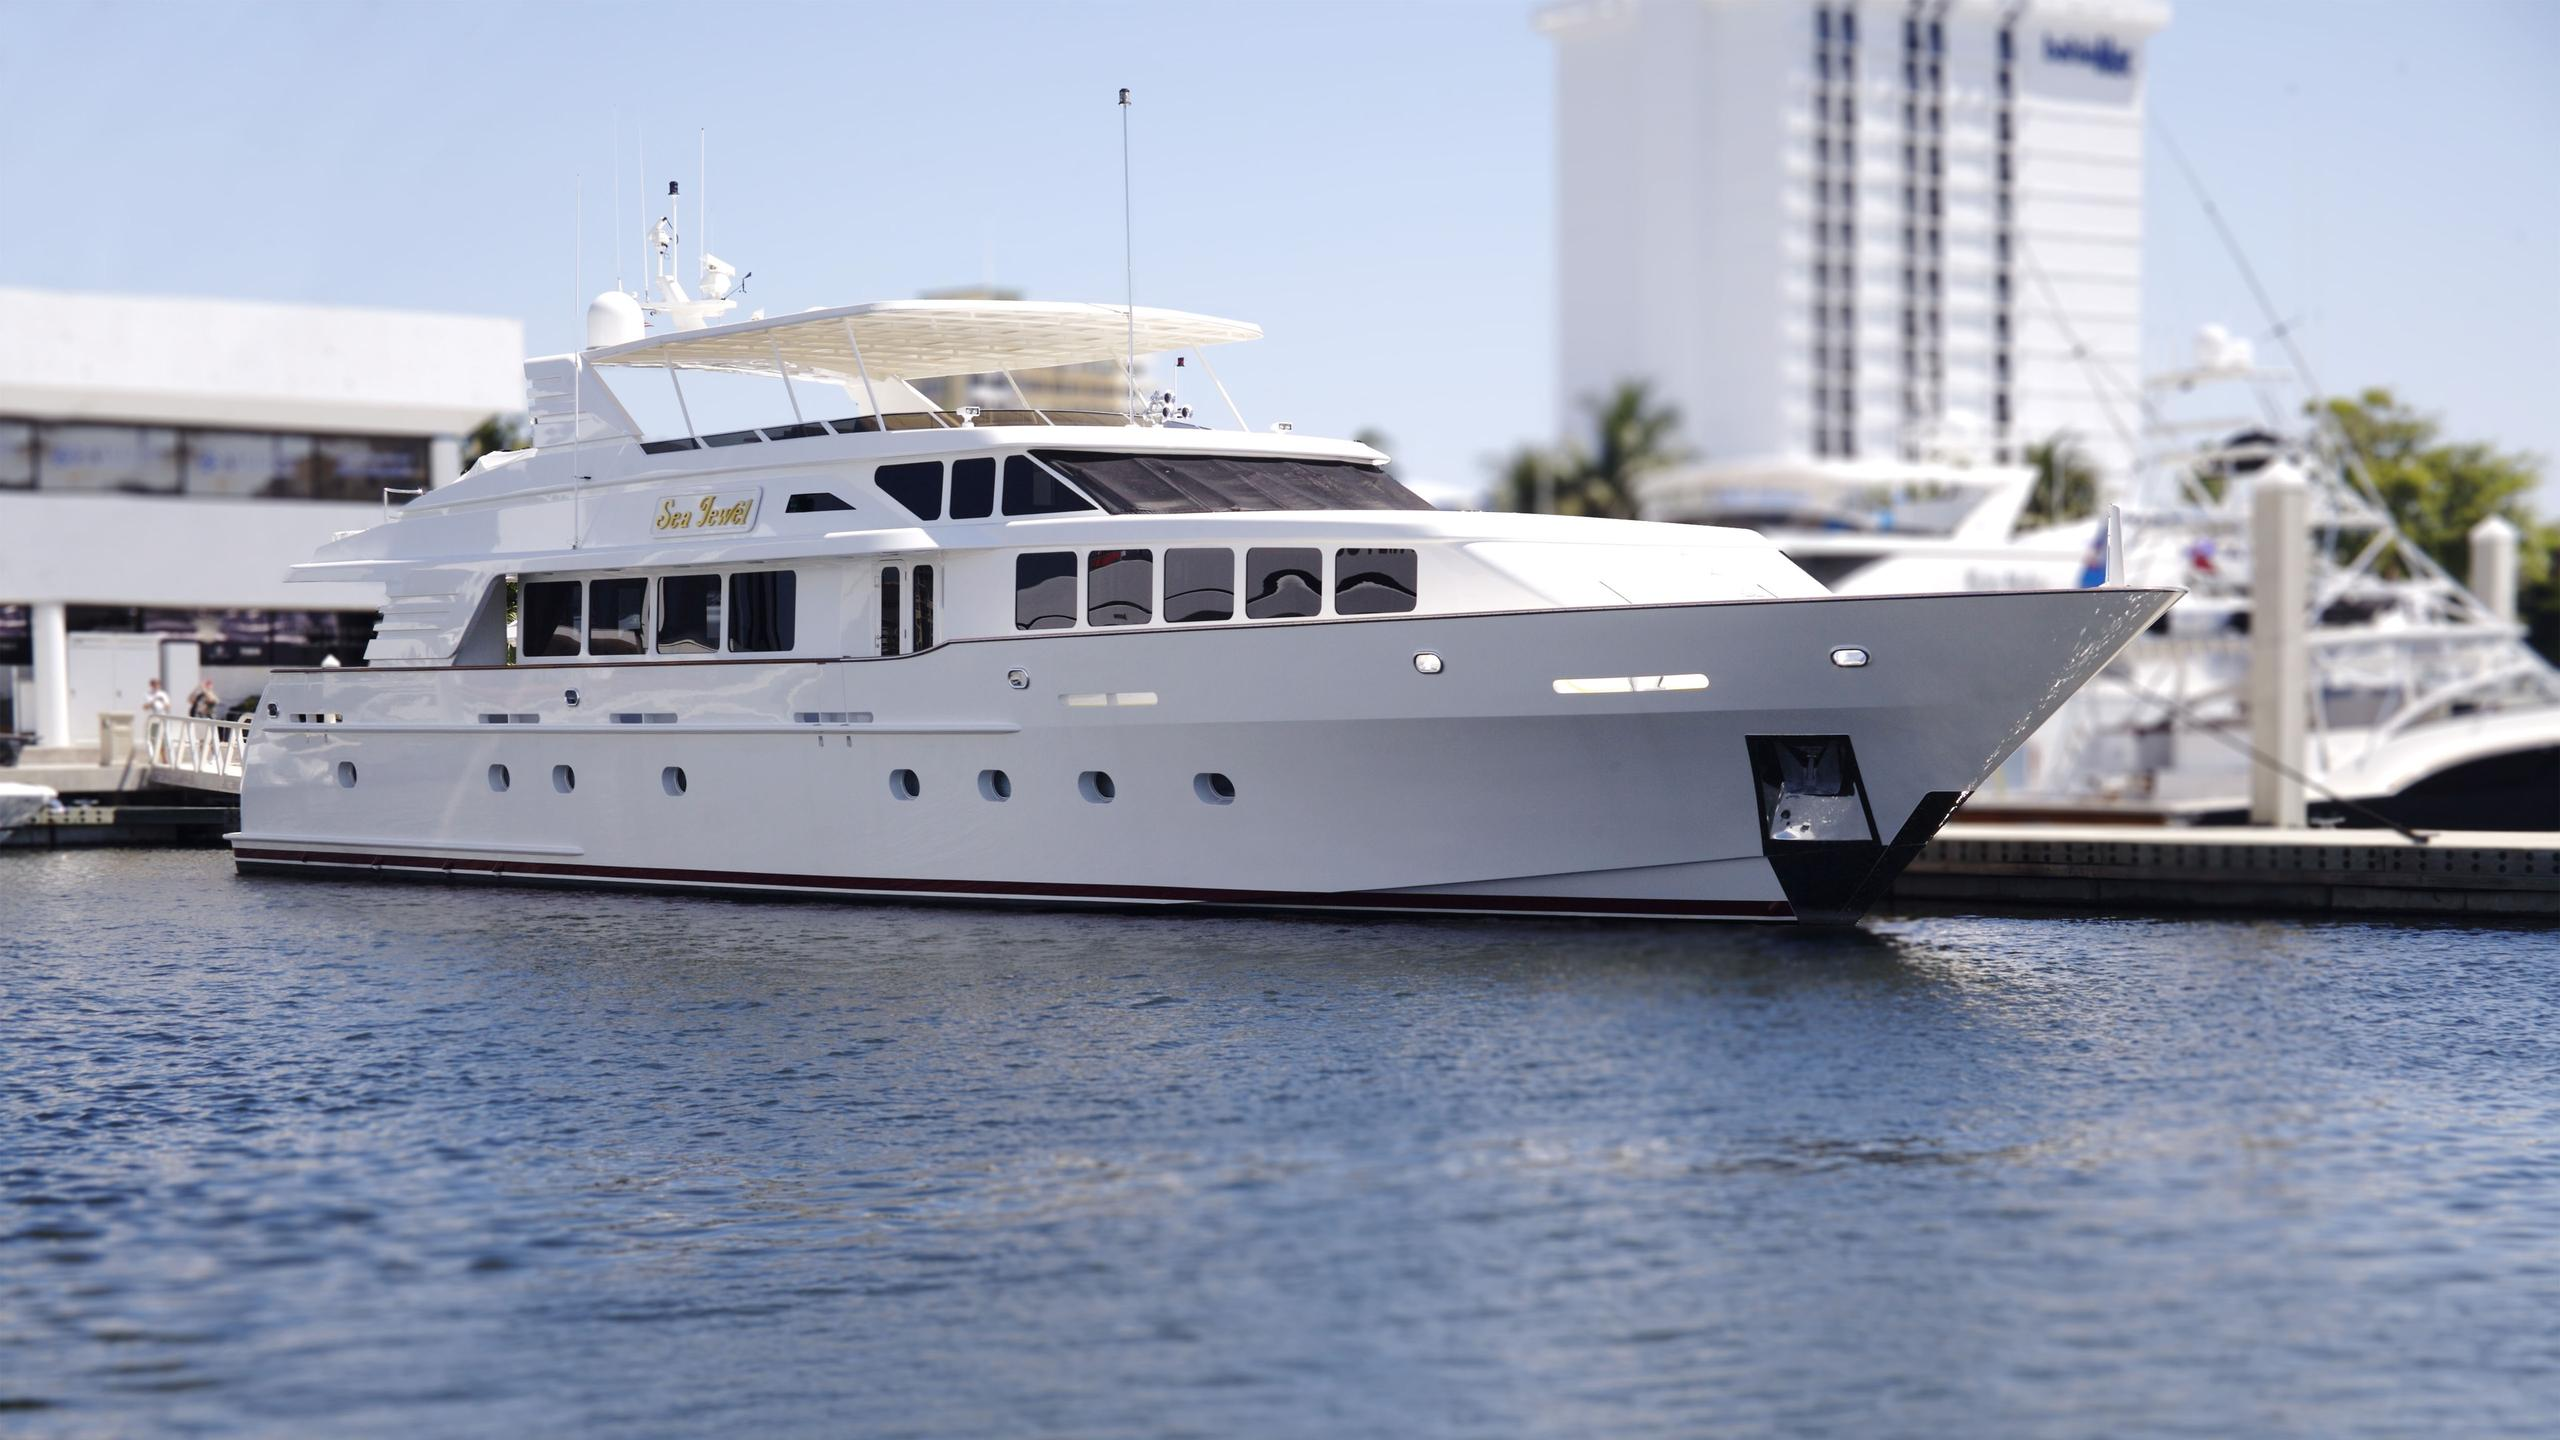 sea-jewel-bravo-yacht-profile